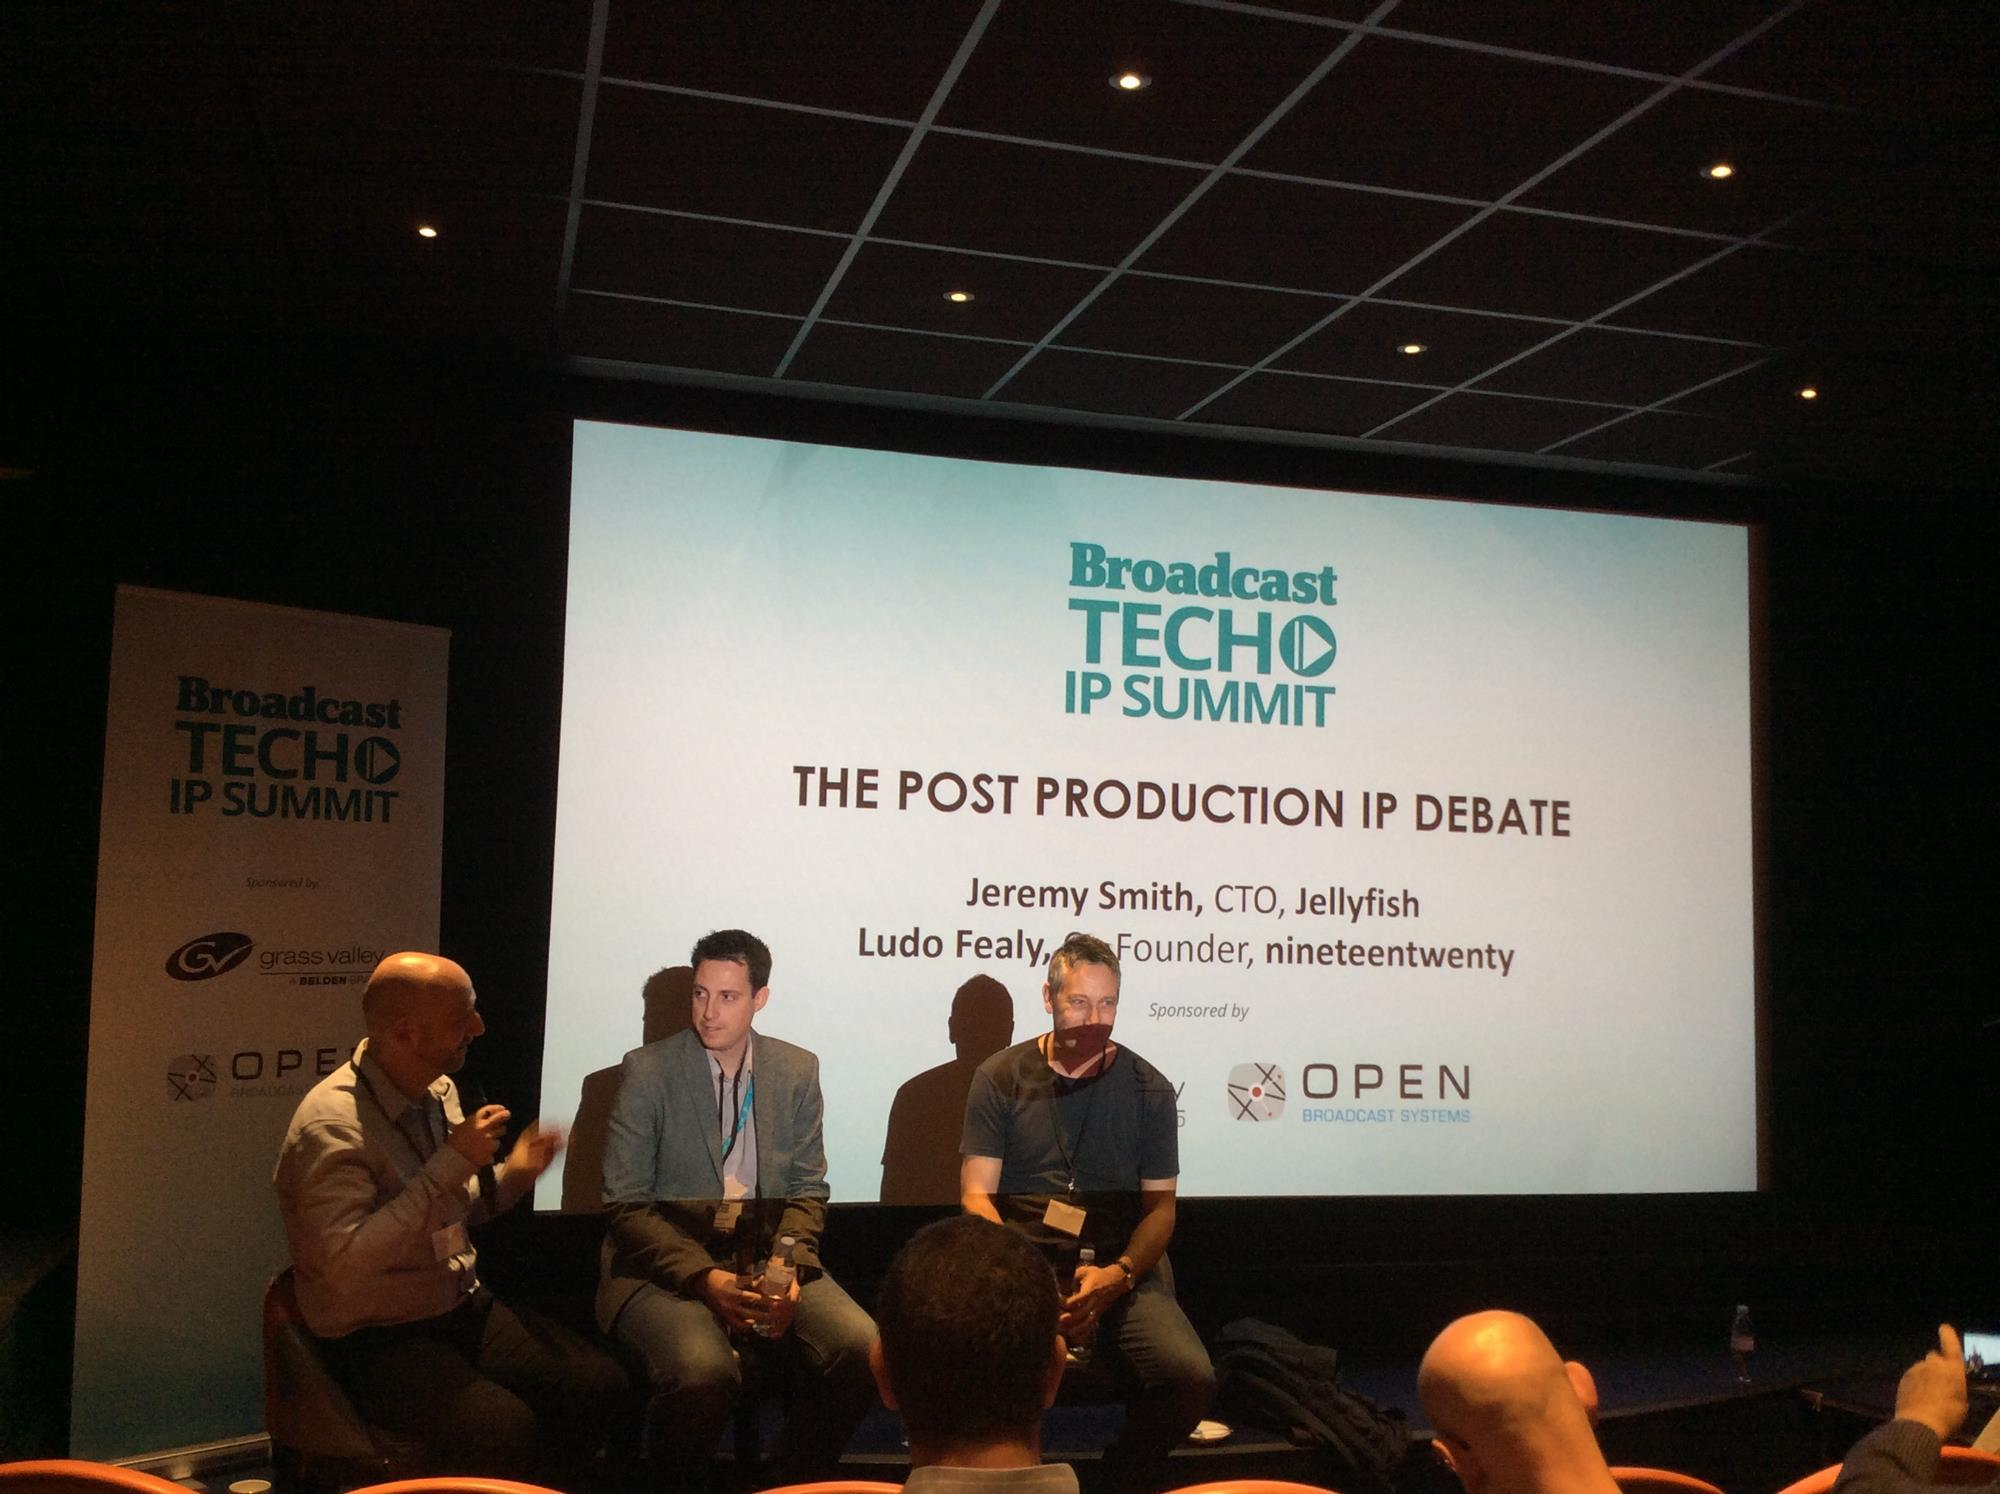 Cloud hailed as saviour of post-production   Industry Trends   IBC